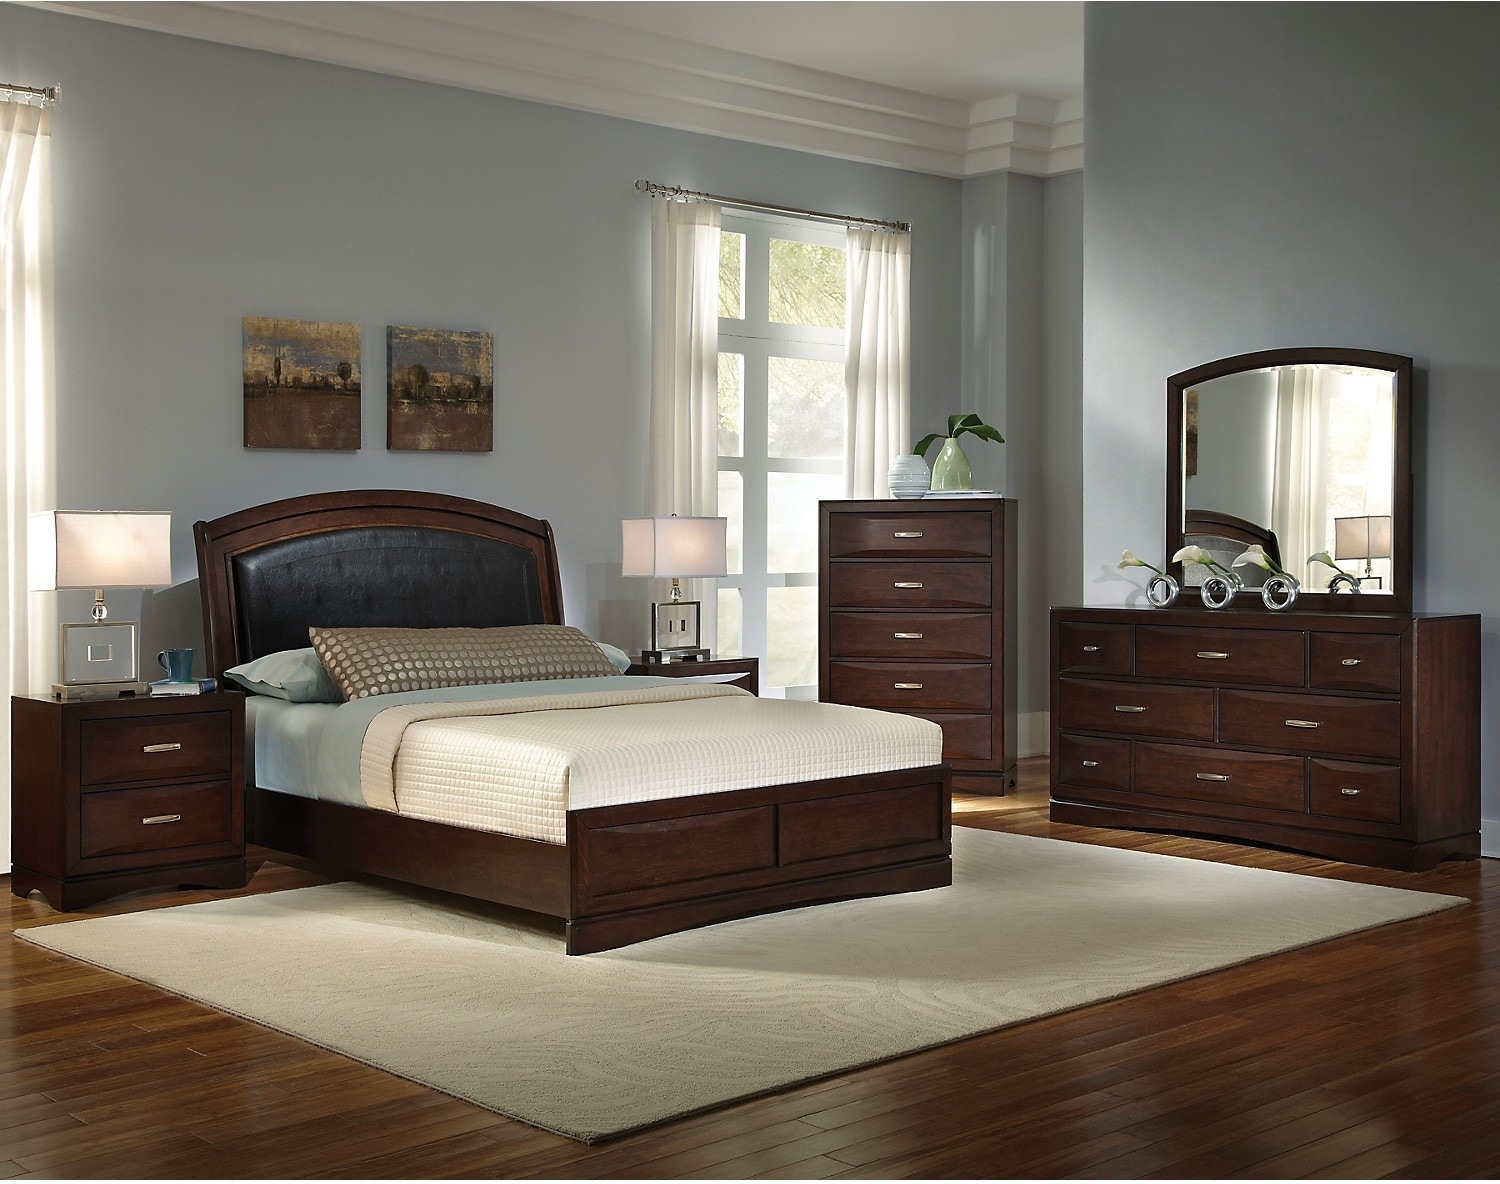 Beverly 8 Piece King Bedroom Set The Brick Interiors Inside Ideas Interiors design about Everything [magnanprojects.com]